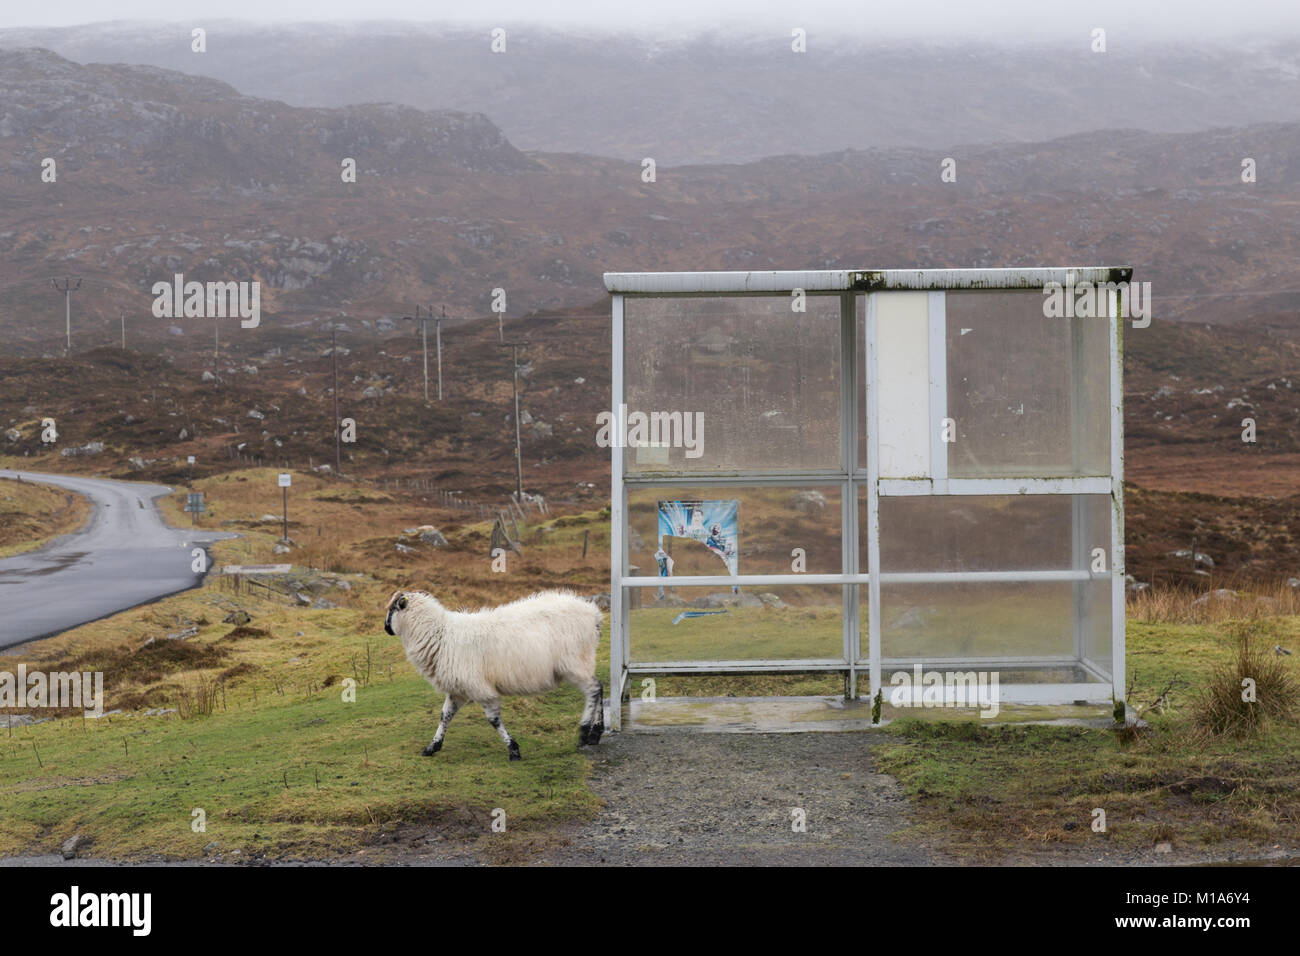 Sheep at bus shelter in the Outer Hebrides - Stock Image